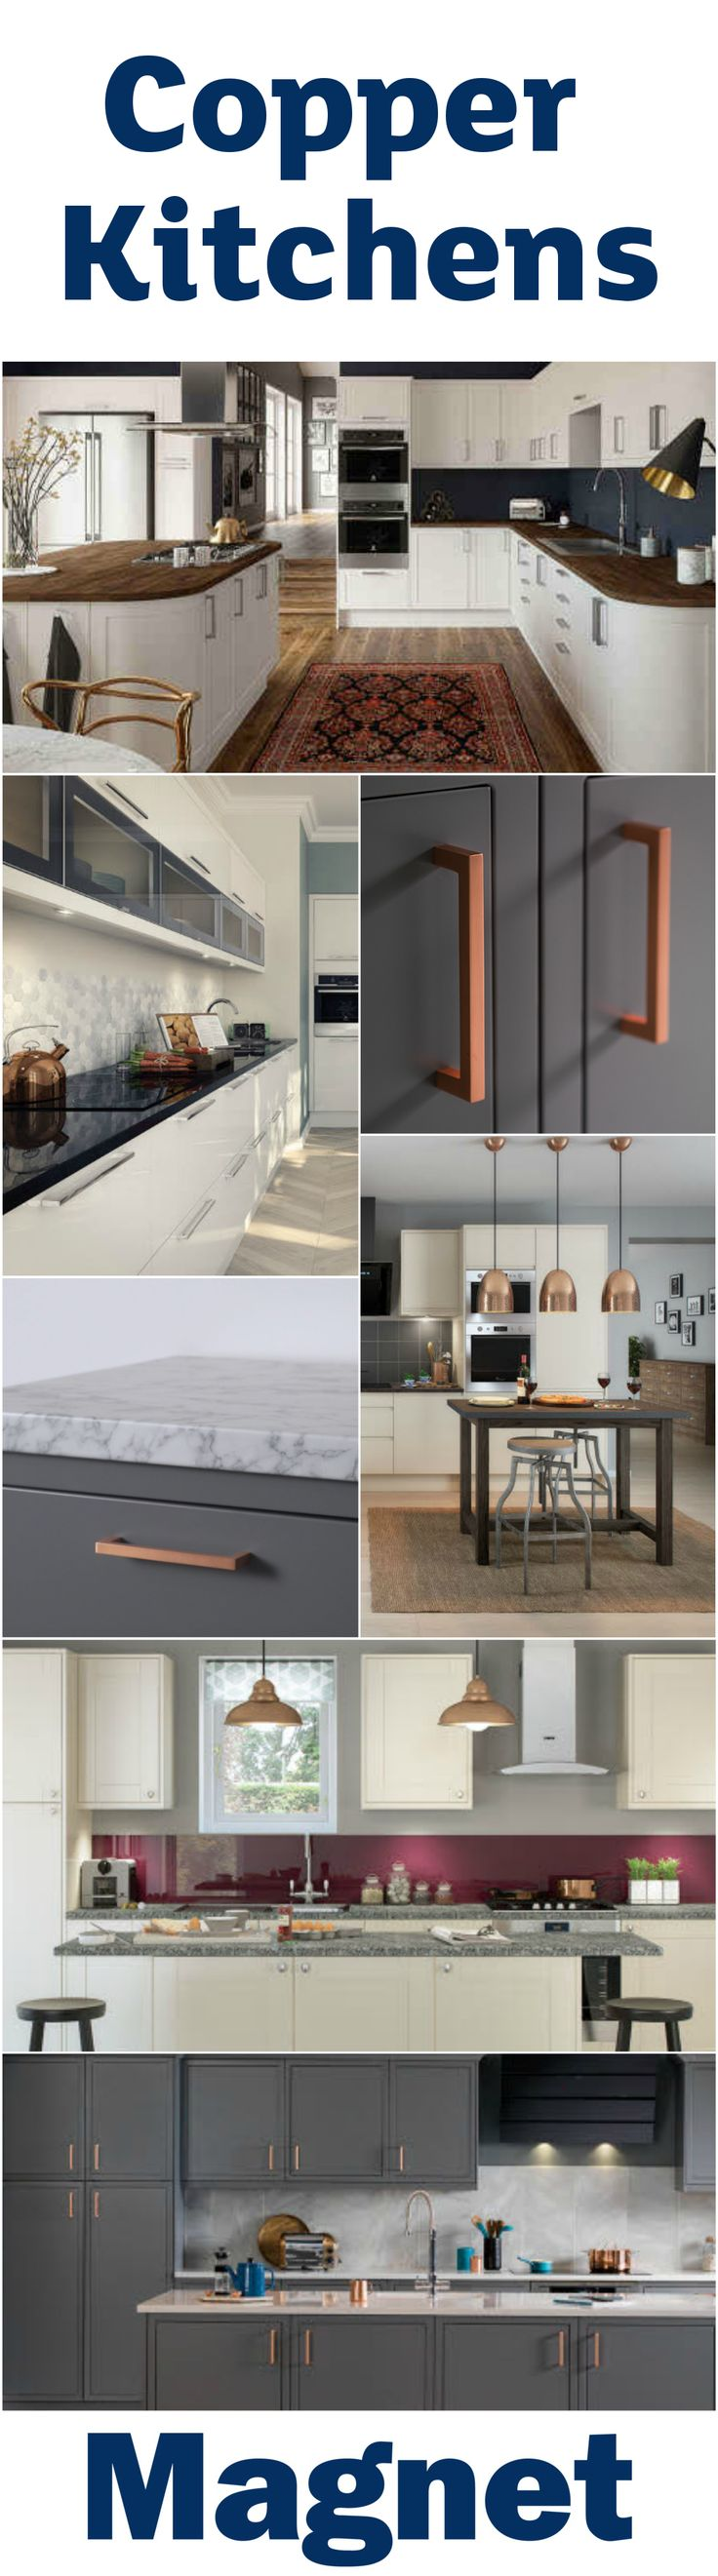 Embrace the copper trend in the home - take a look at our range of kitchens and copper accessories